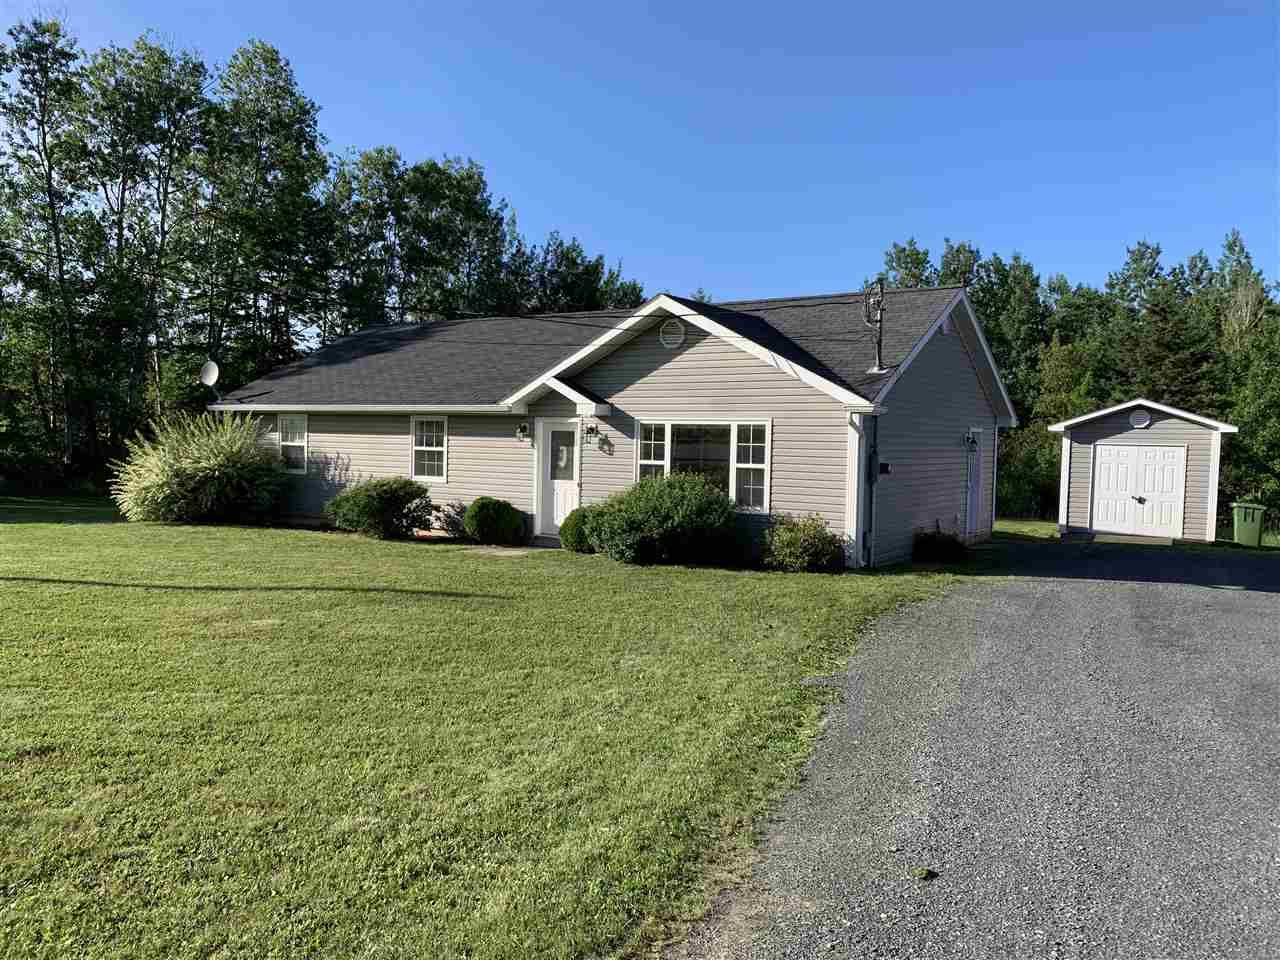 Main Photo: 191 Truro Road in Westville Road: 108-Rural Pictou County Residential for sale (Northern Region)  : MLS®# 202013227